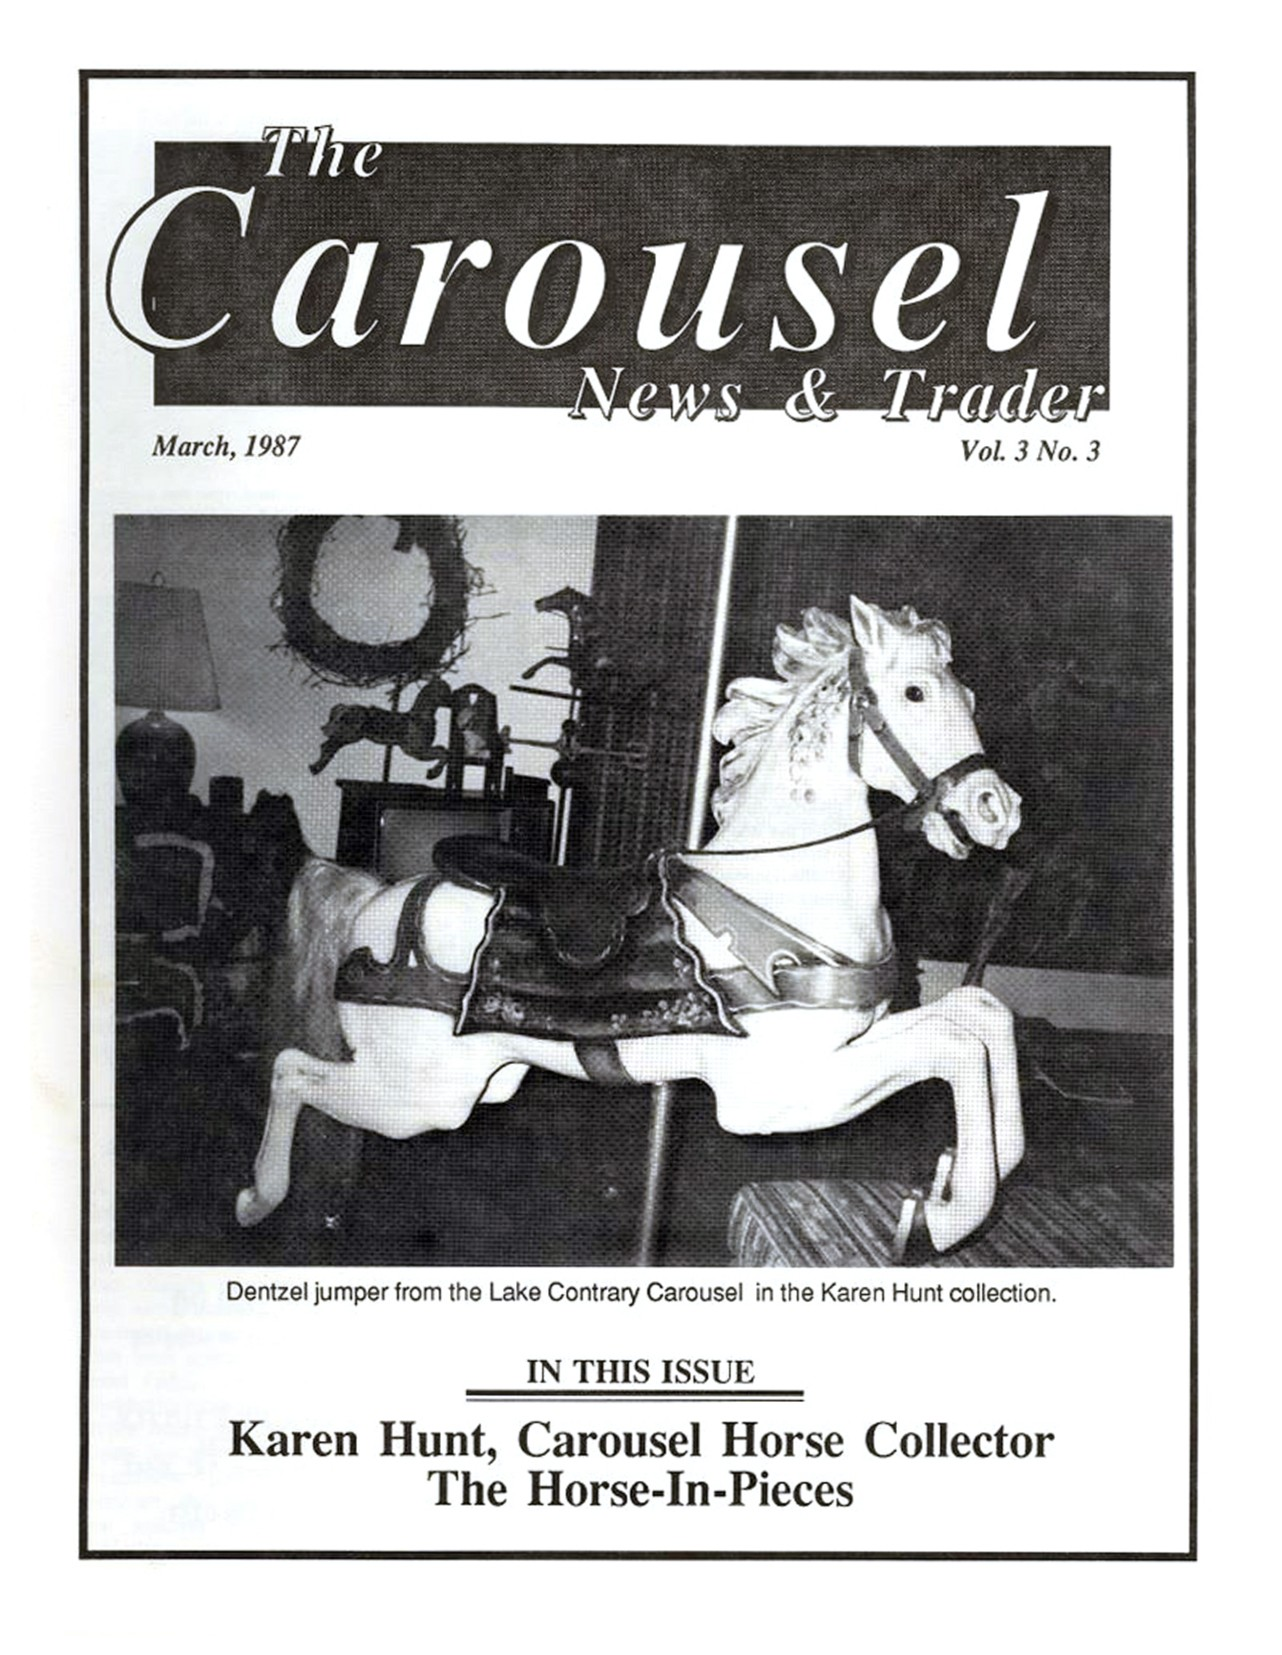 Carousel-News-cover-03_1987-Lake-Contrary-Park-Dentzel-jumper